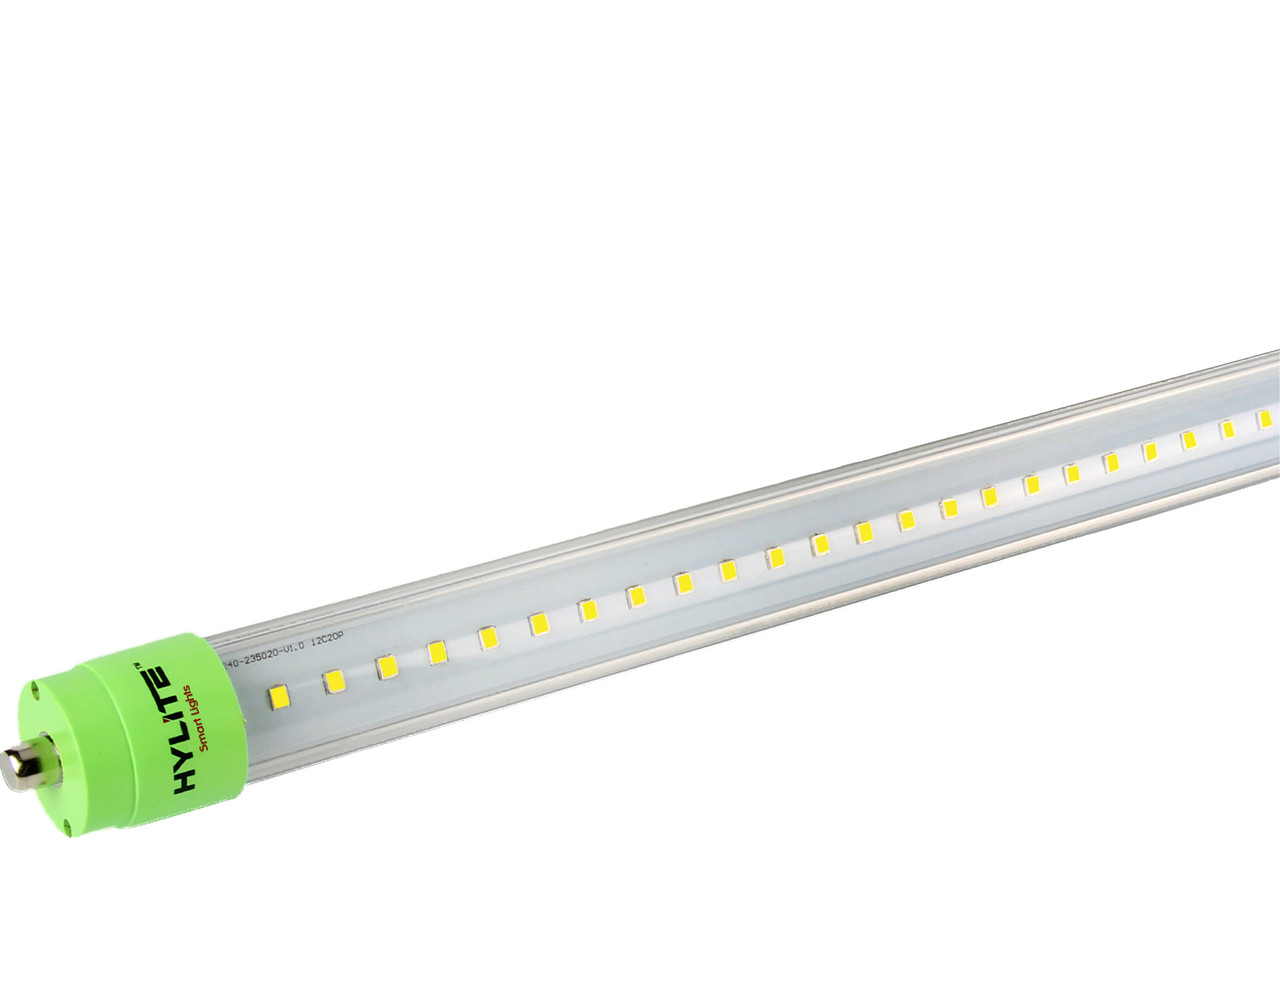 Hylite 8 Foot T8 T12 Led Replacement Tube Hl 8c 36w 50k F17t8 3light Electronic Ballast Ballasts